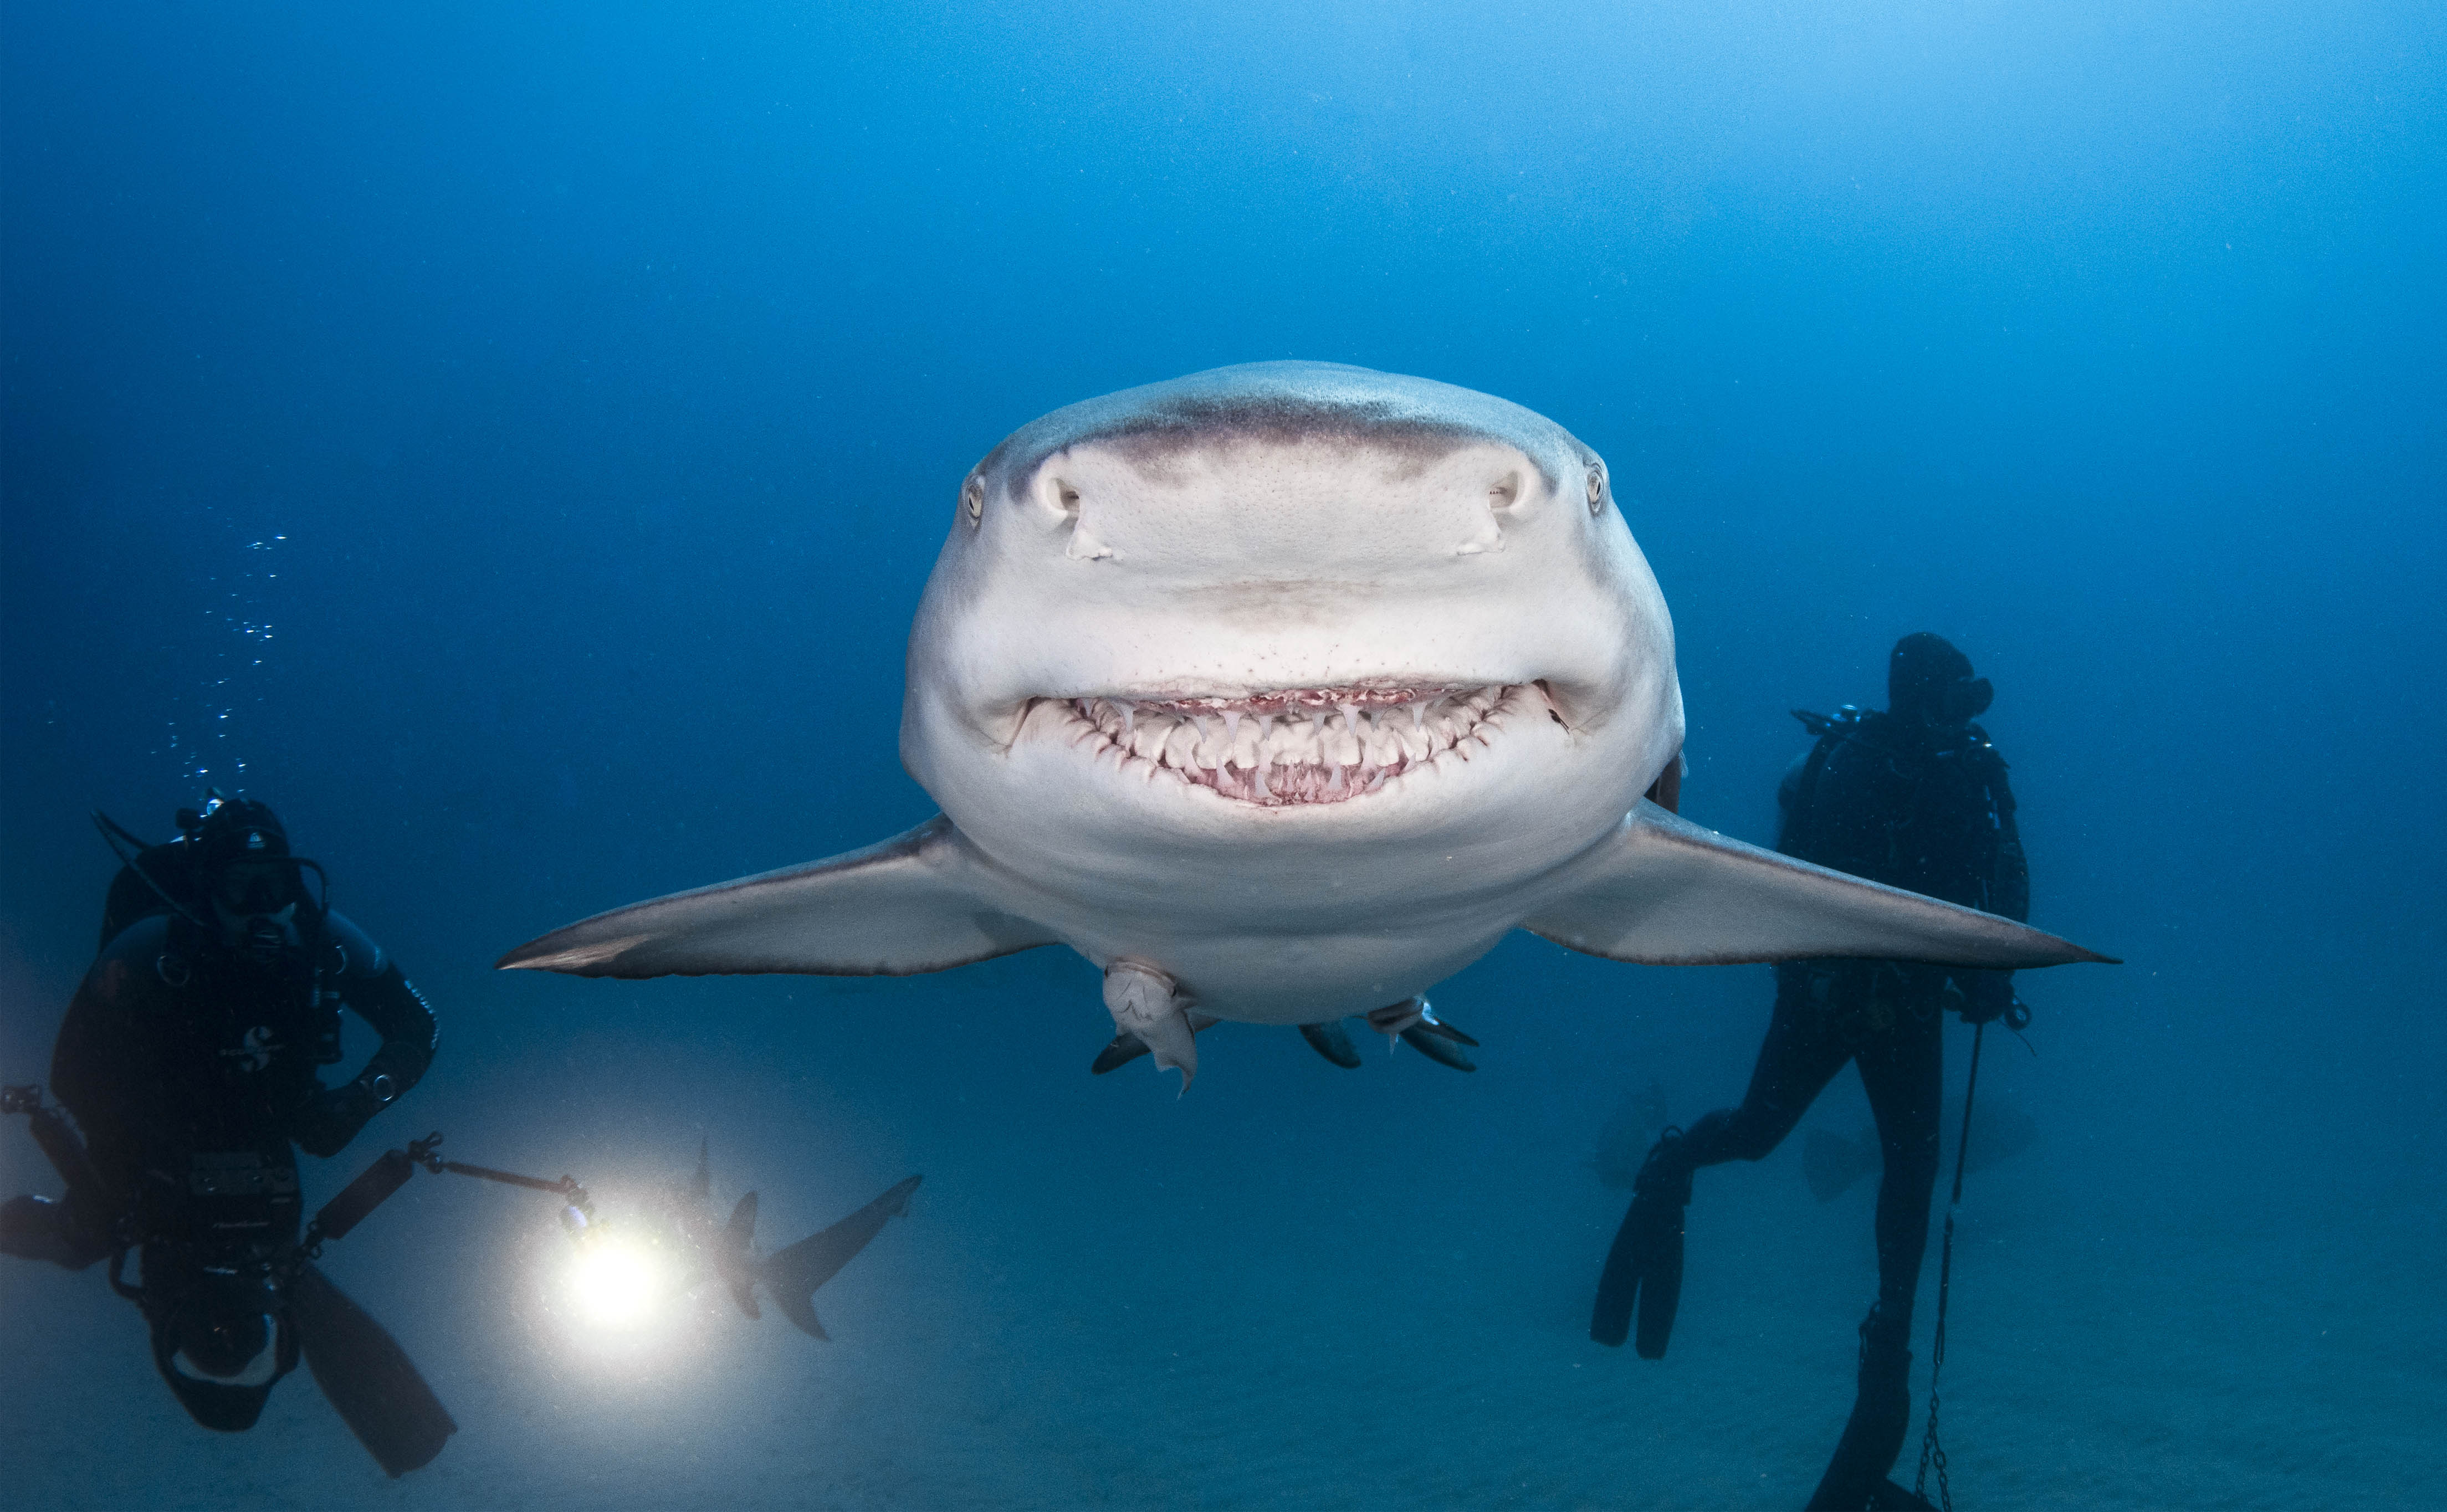 Great White Shark Wallpaper Cute Say Cheeese The Jaw Some Moment Shark Gives Camera His